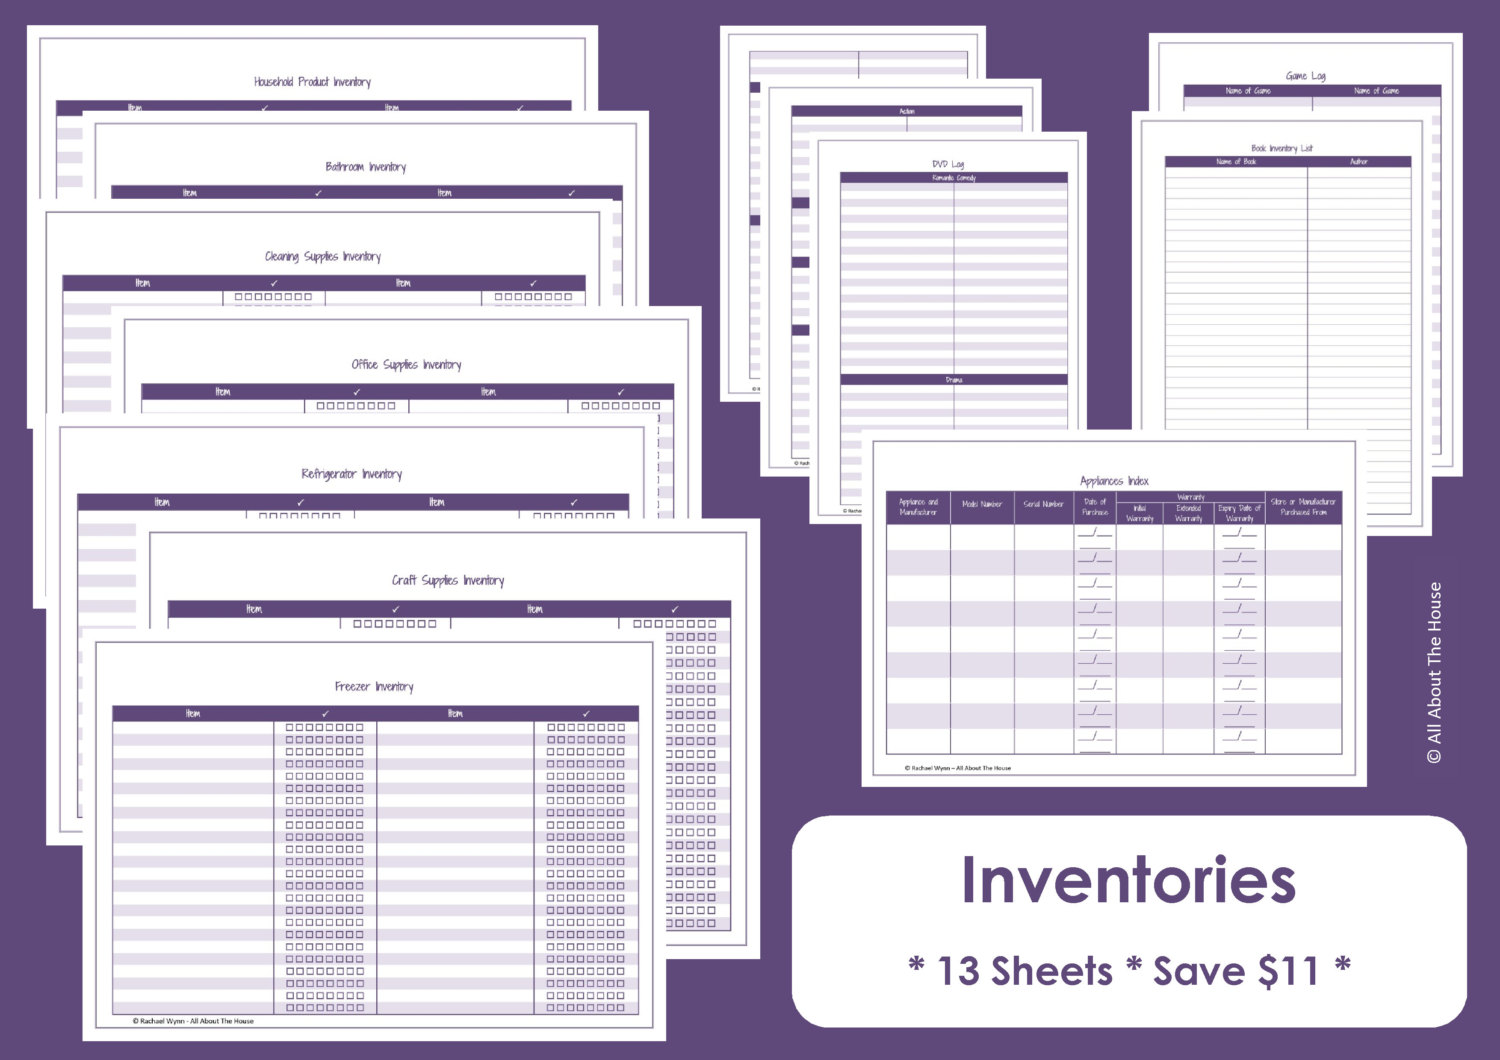 small jewelry business inventory management